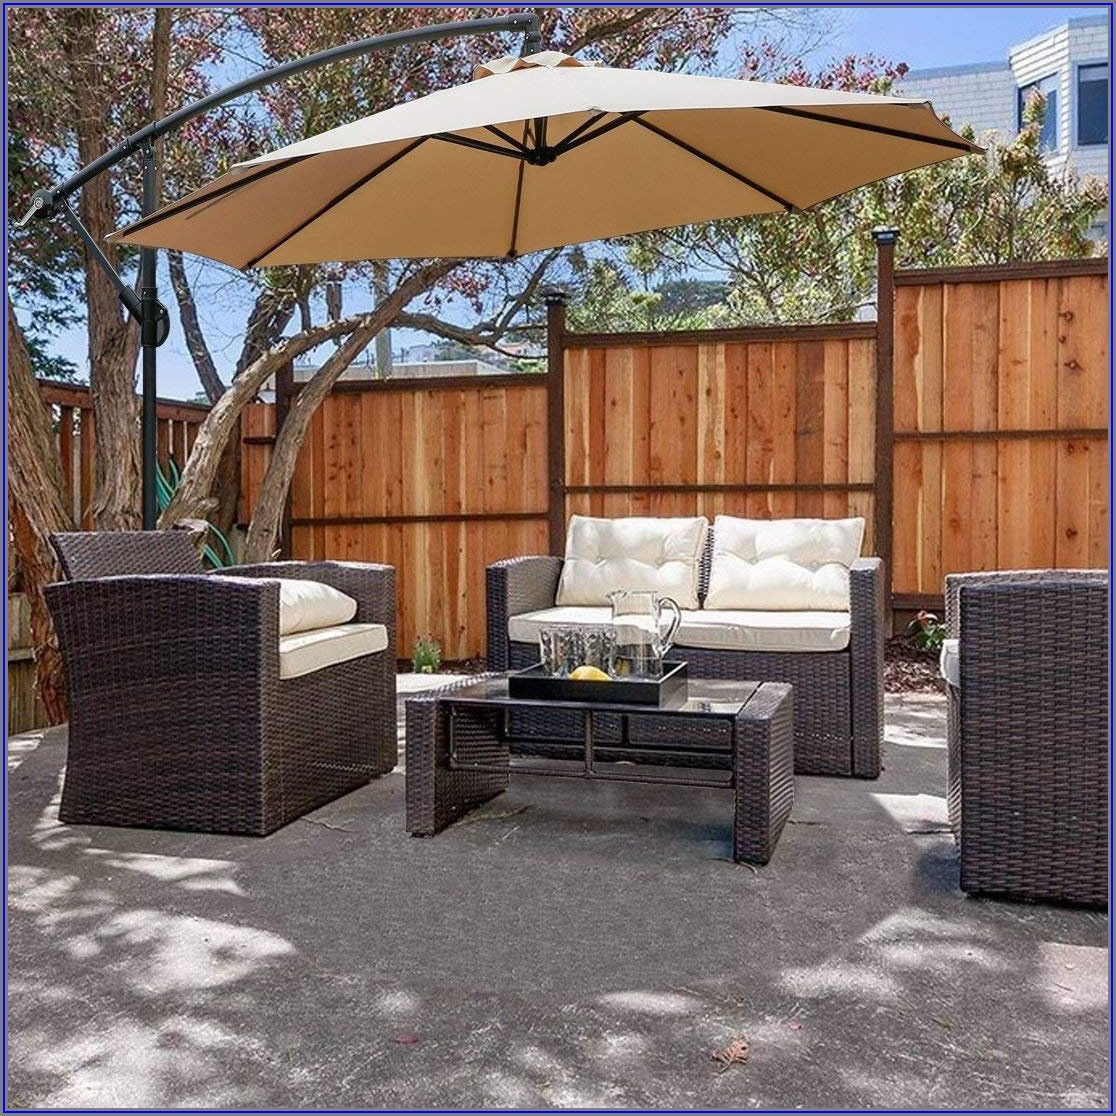 10 Ft Cantilever Patio Umbrella